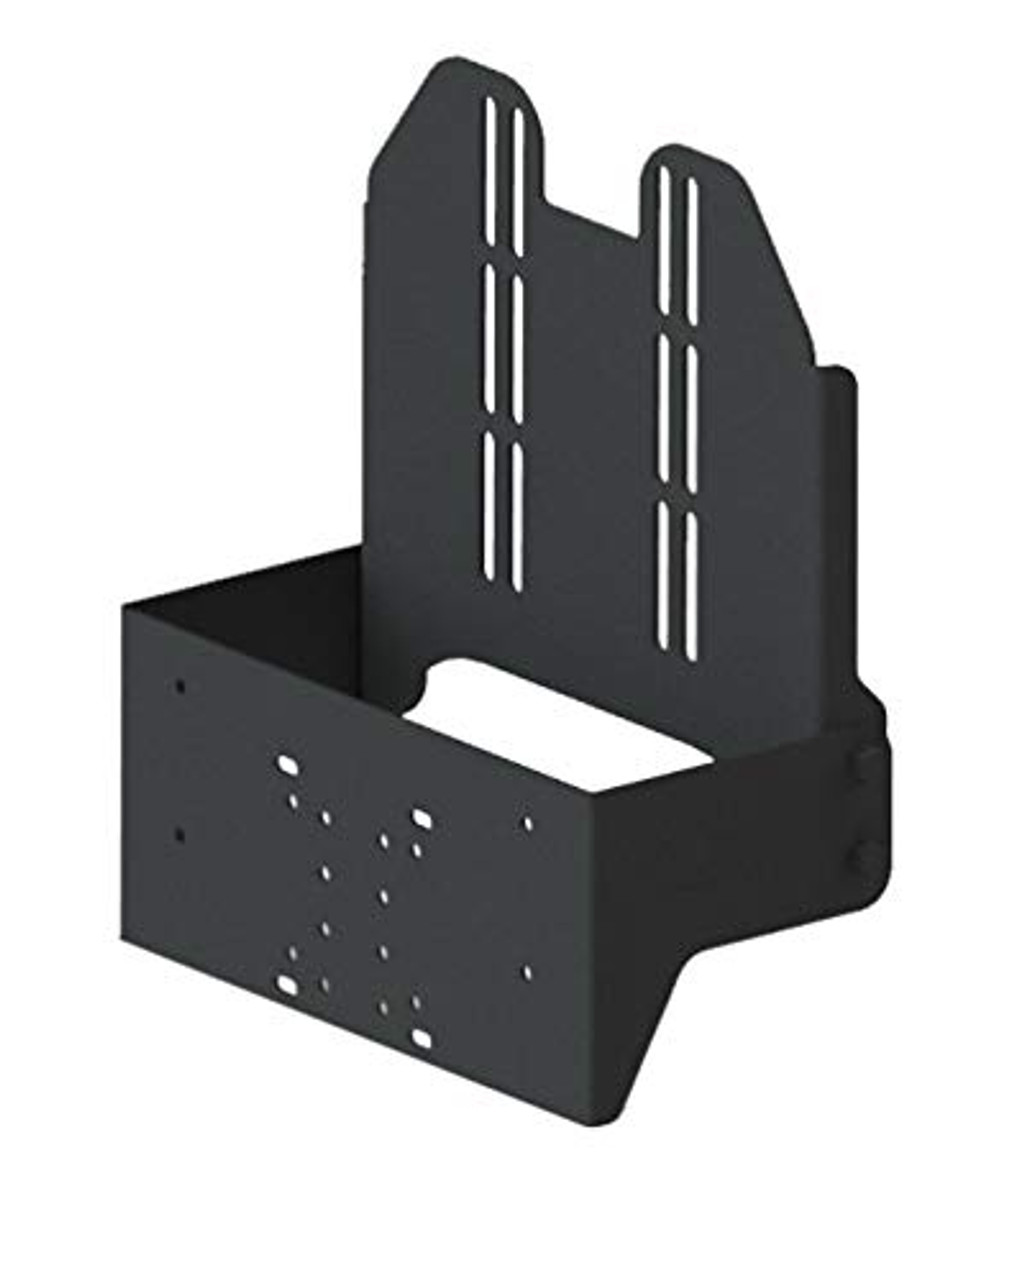 """Vertical Tablet Keyboard Mount. AMPS, 2.5"""" Square, 75 mm VESA and 2.7"""" Hole Pattern to Attach Keyboard (7160-1257) 